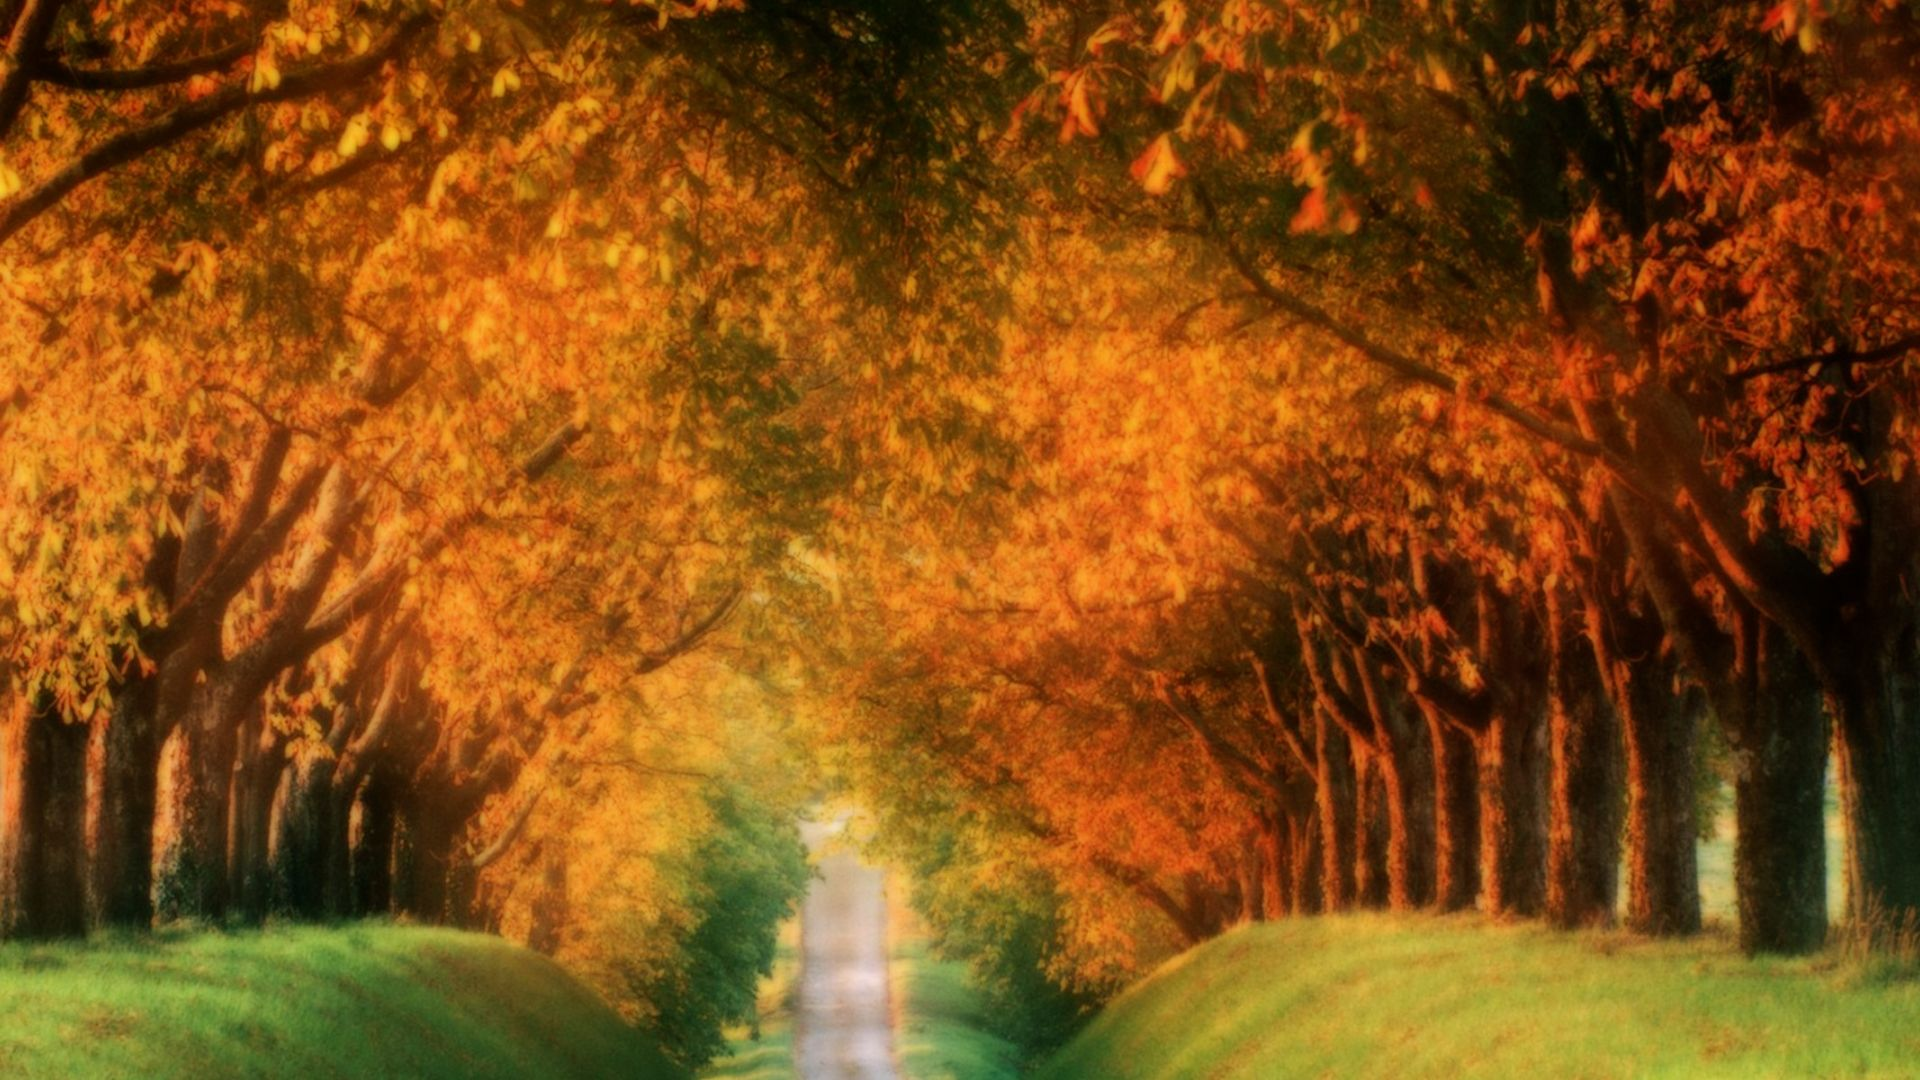 wallpapers autumn road cognac region france papeis desktop image france world landscapes